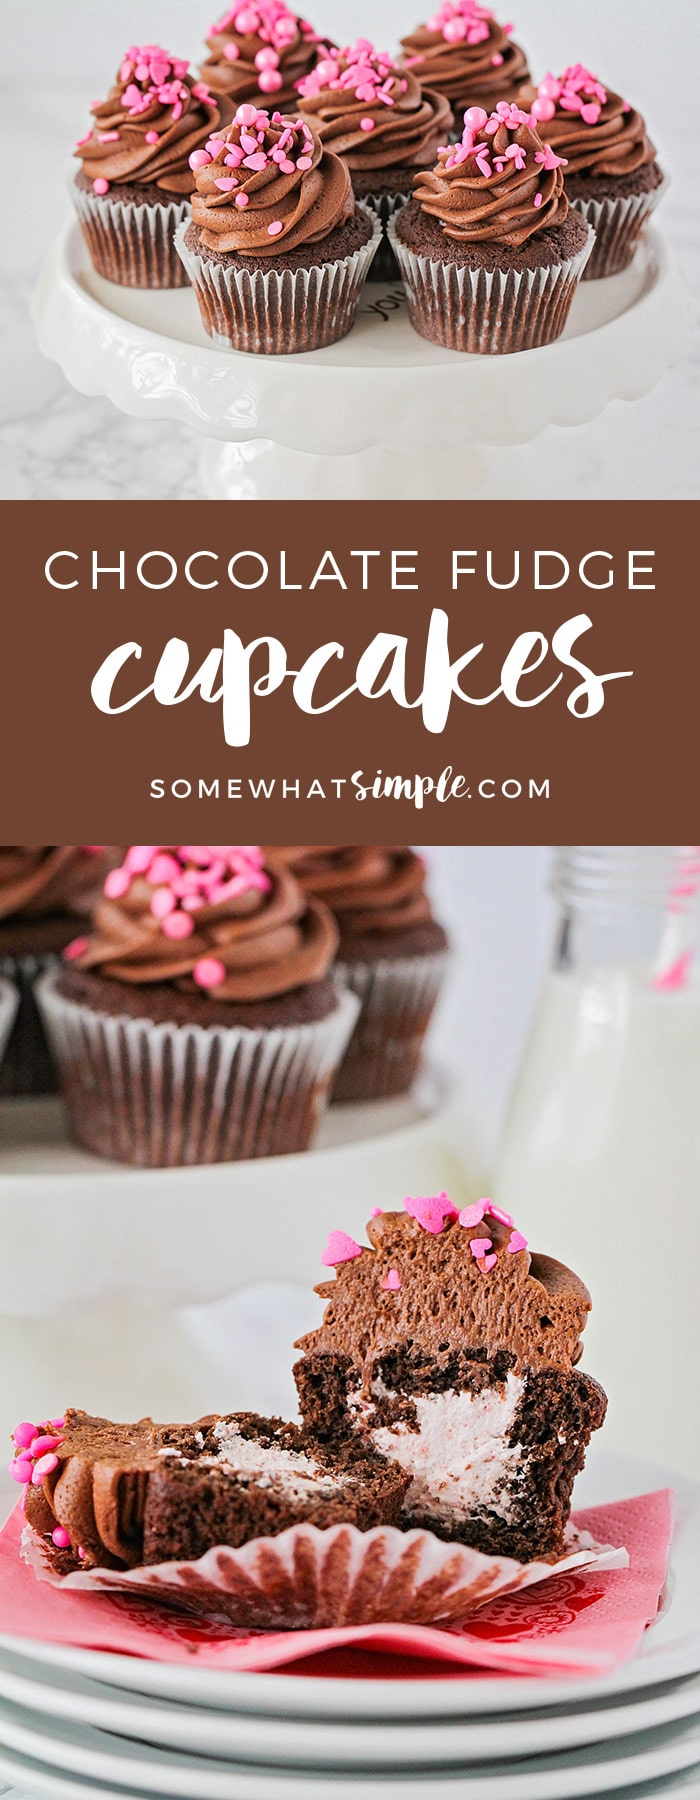 These delicious chocolate fudge cupcakes just might change the way you make cupcakes forever!!!